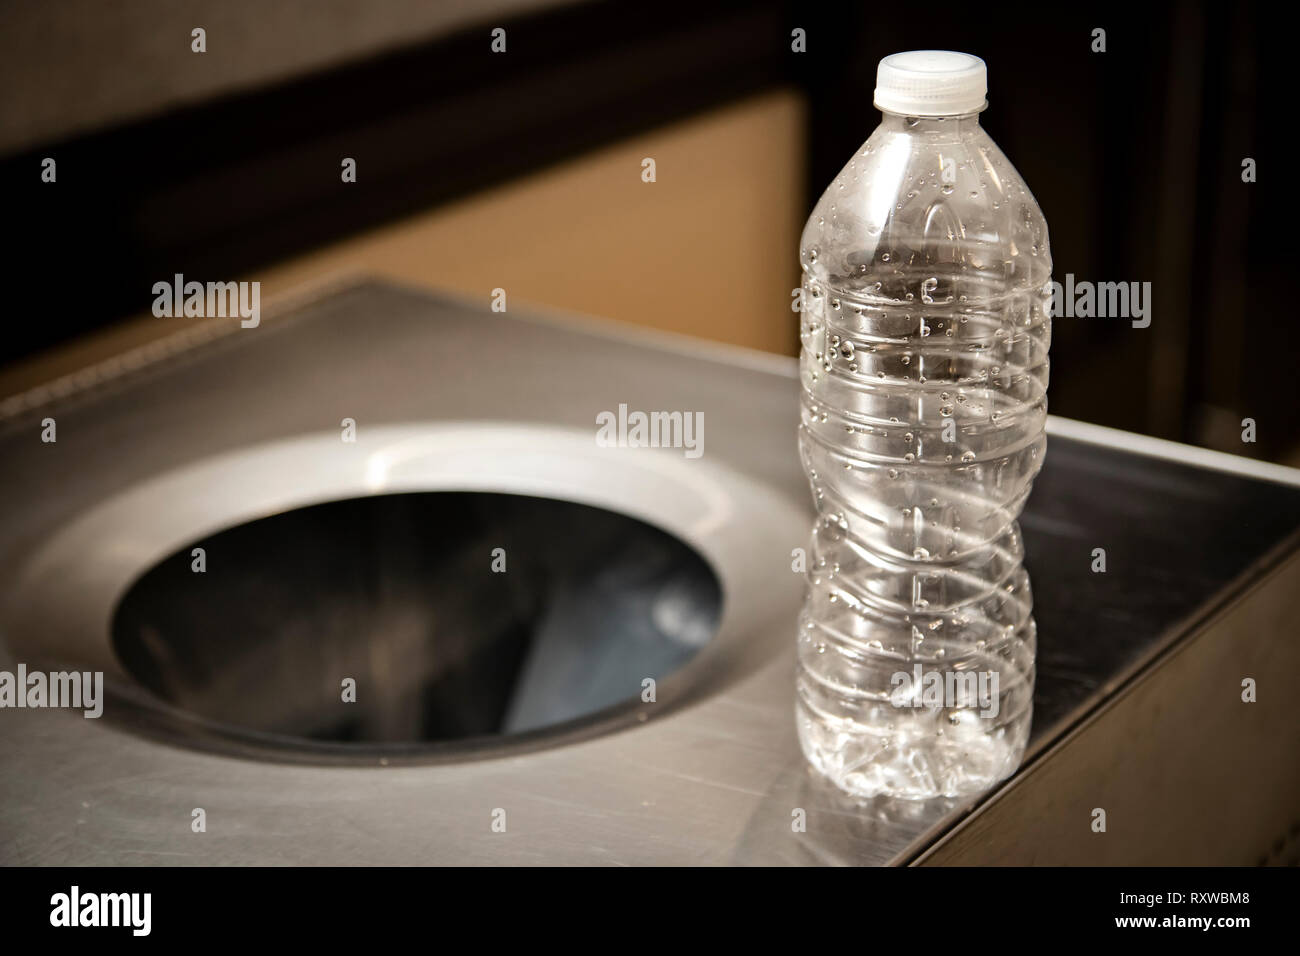 Singe use disposable plastic water bottle next to trash or recycling bin. - Stock Image